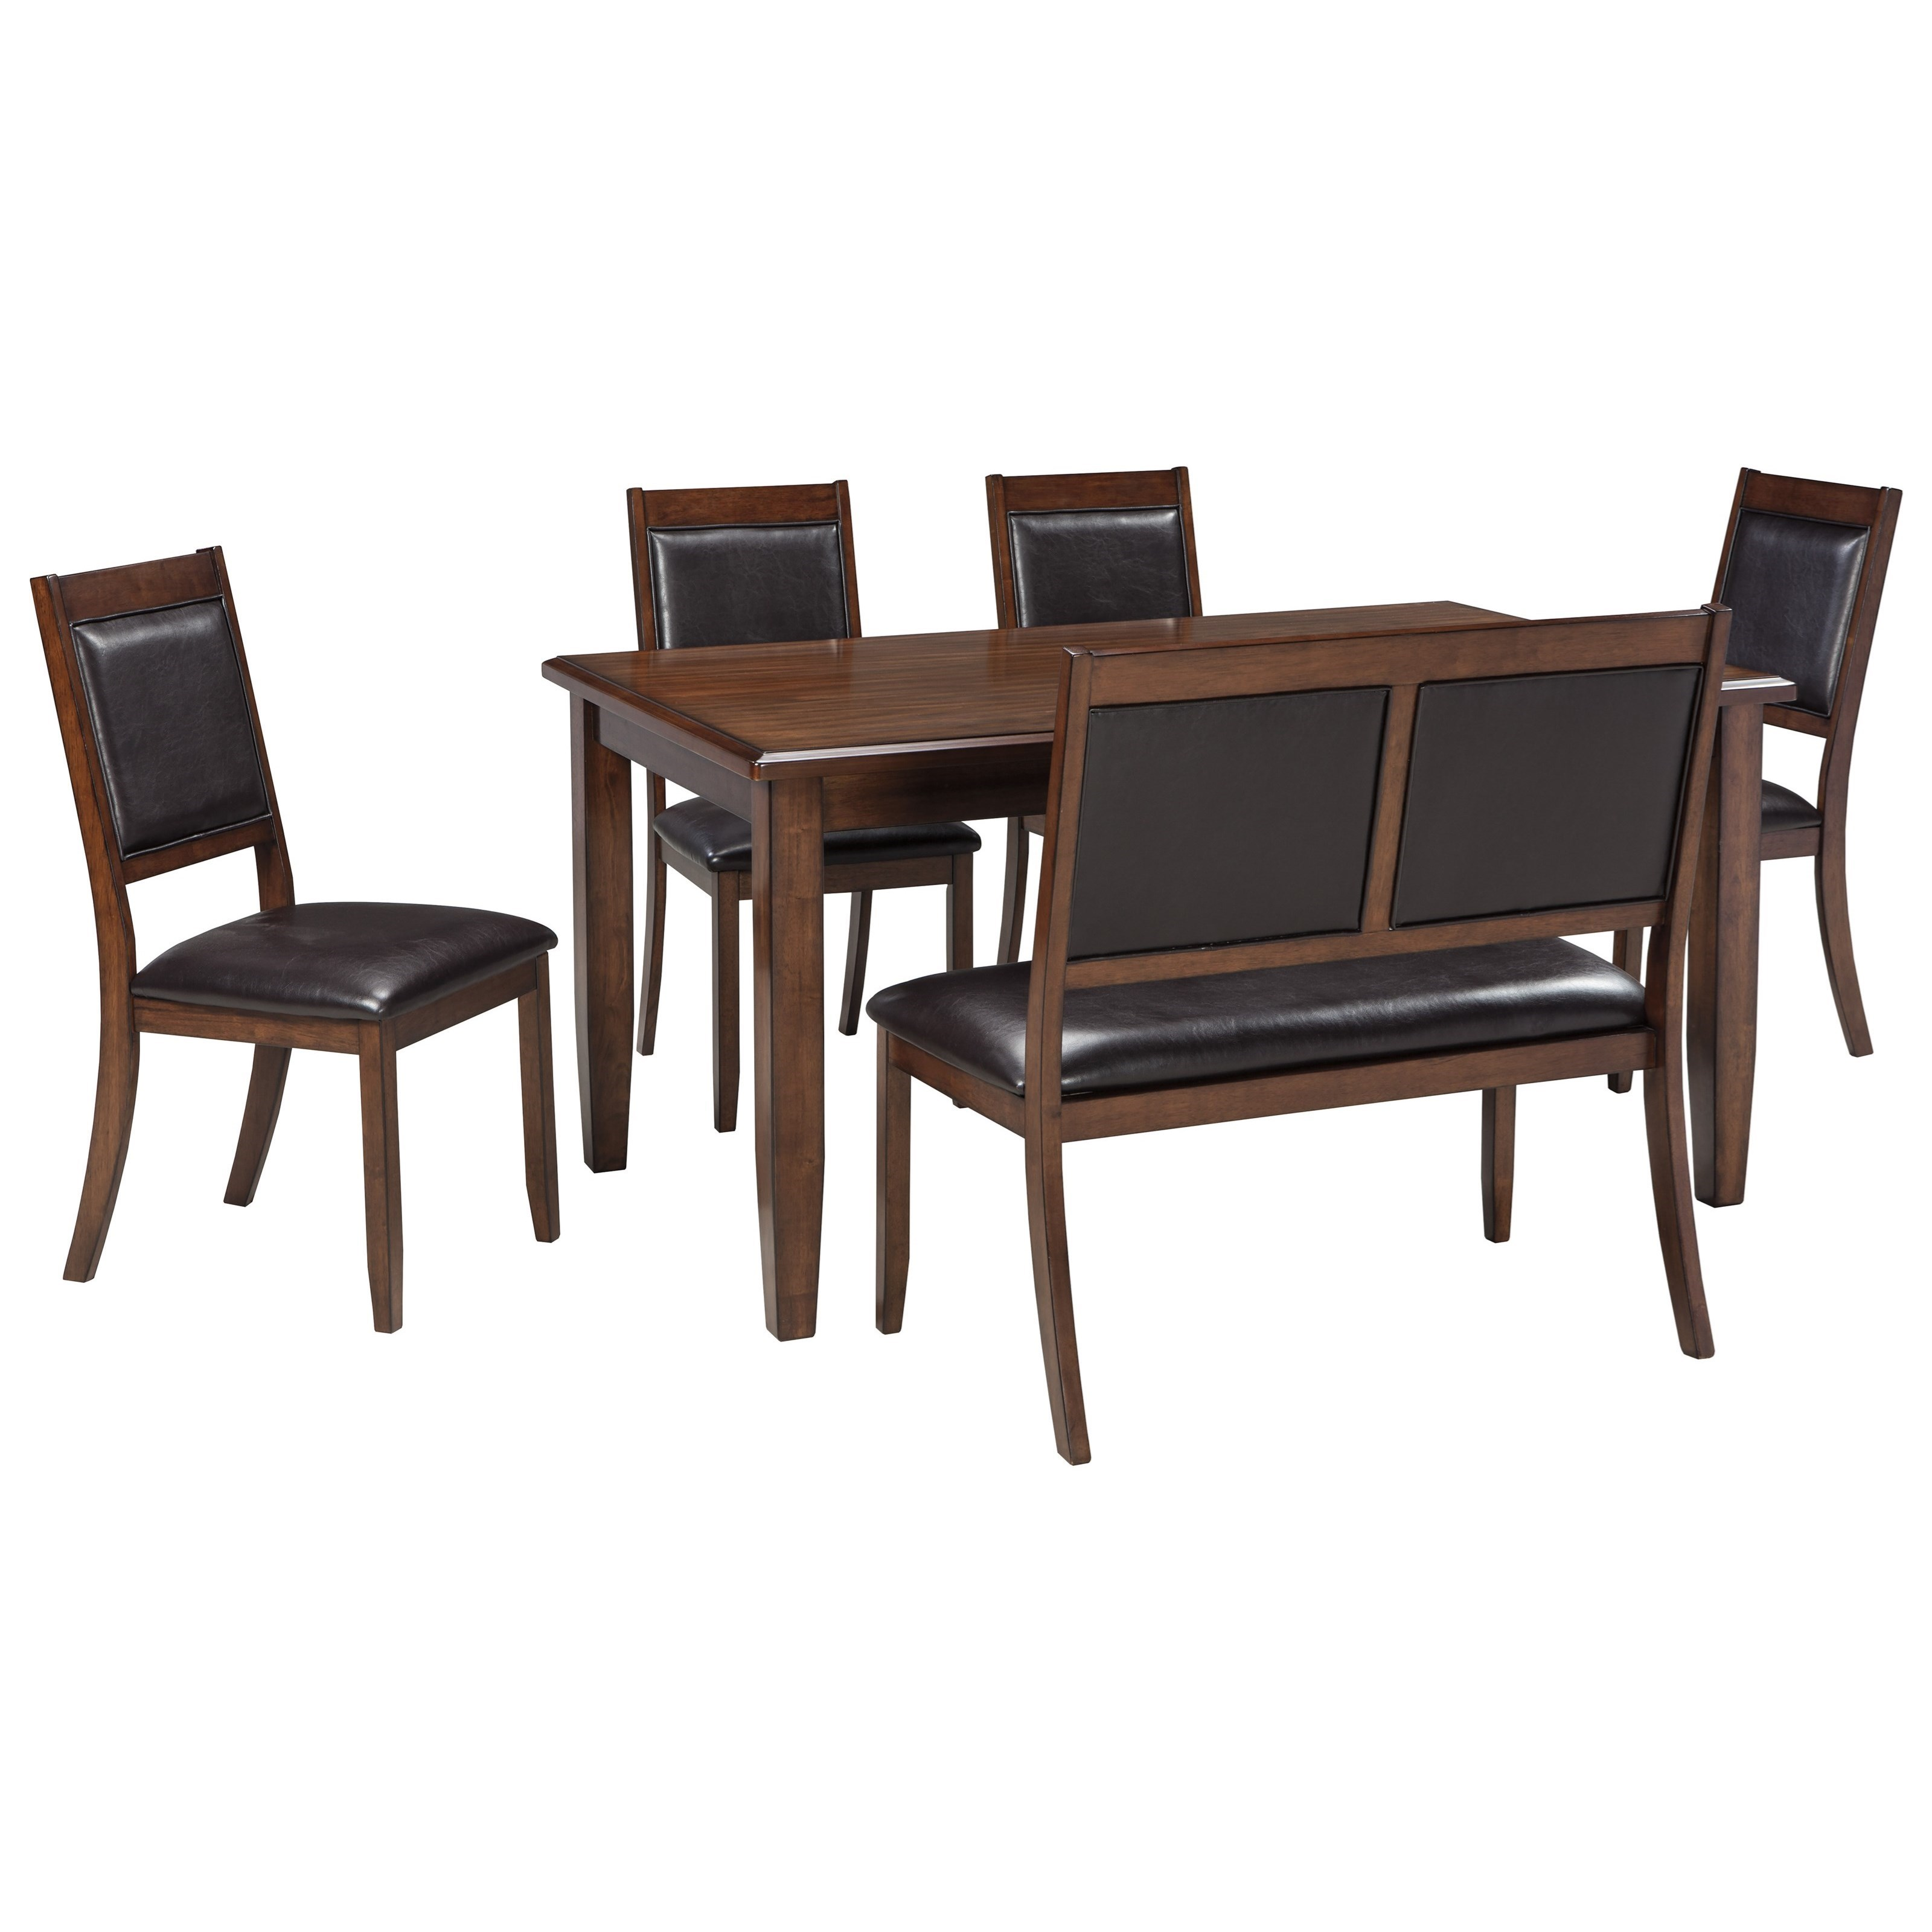 signature design by ashley meredy 6piece dining room table set with bench john v schultz furniture table u0026 chair set with bench